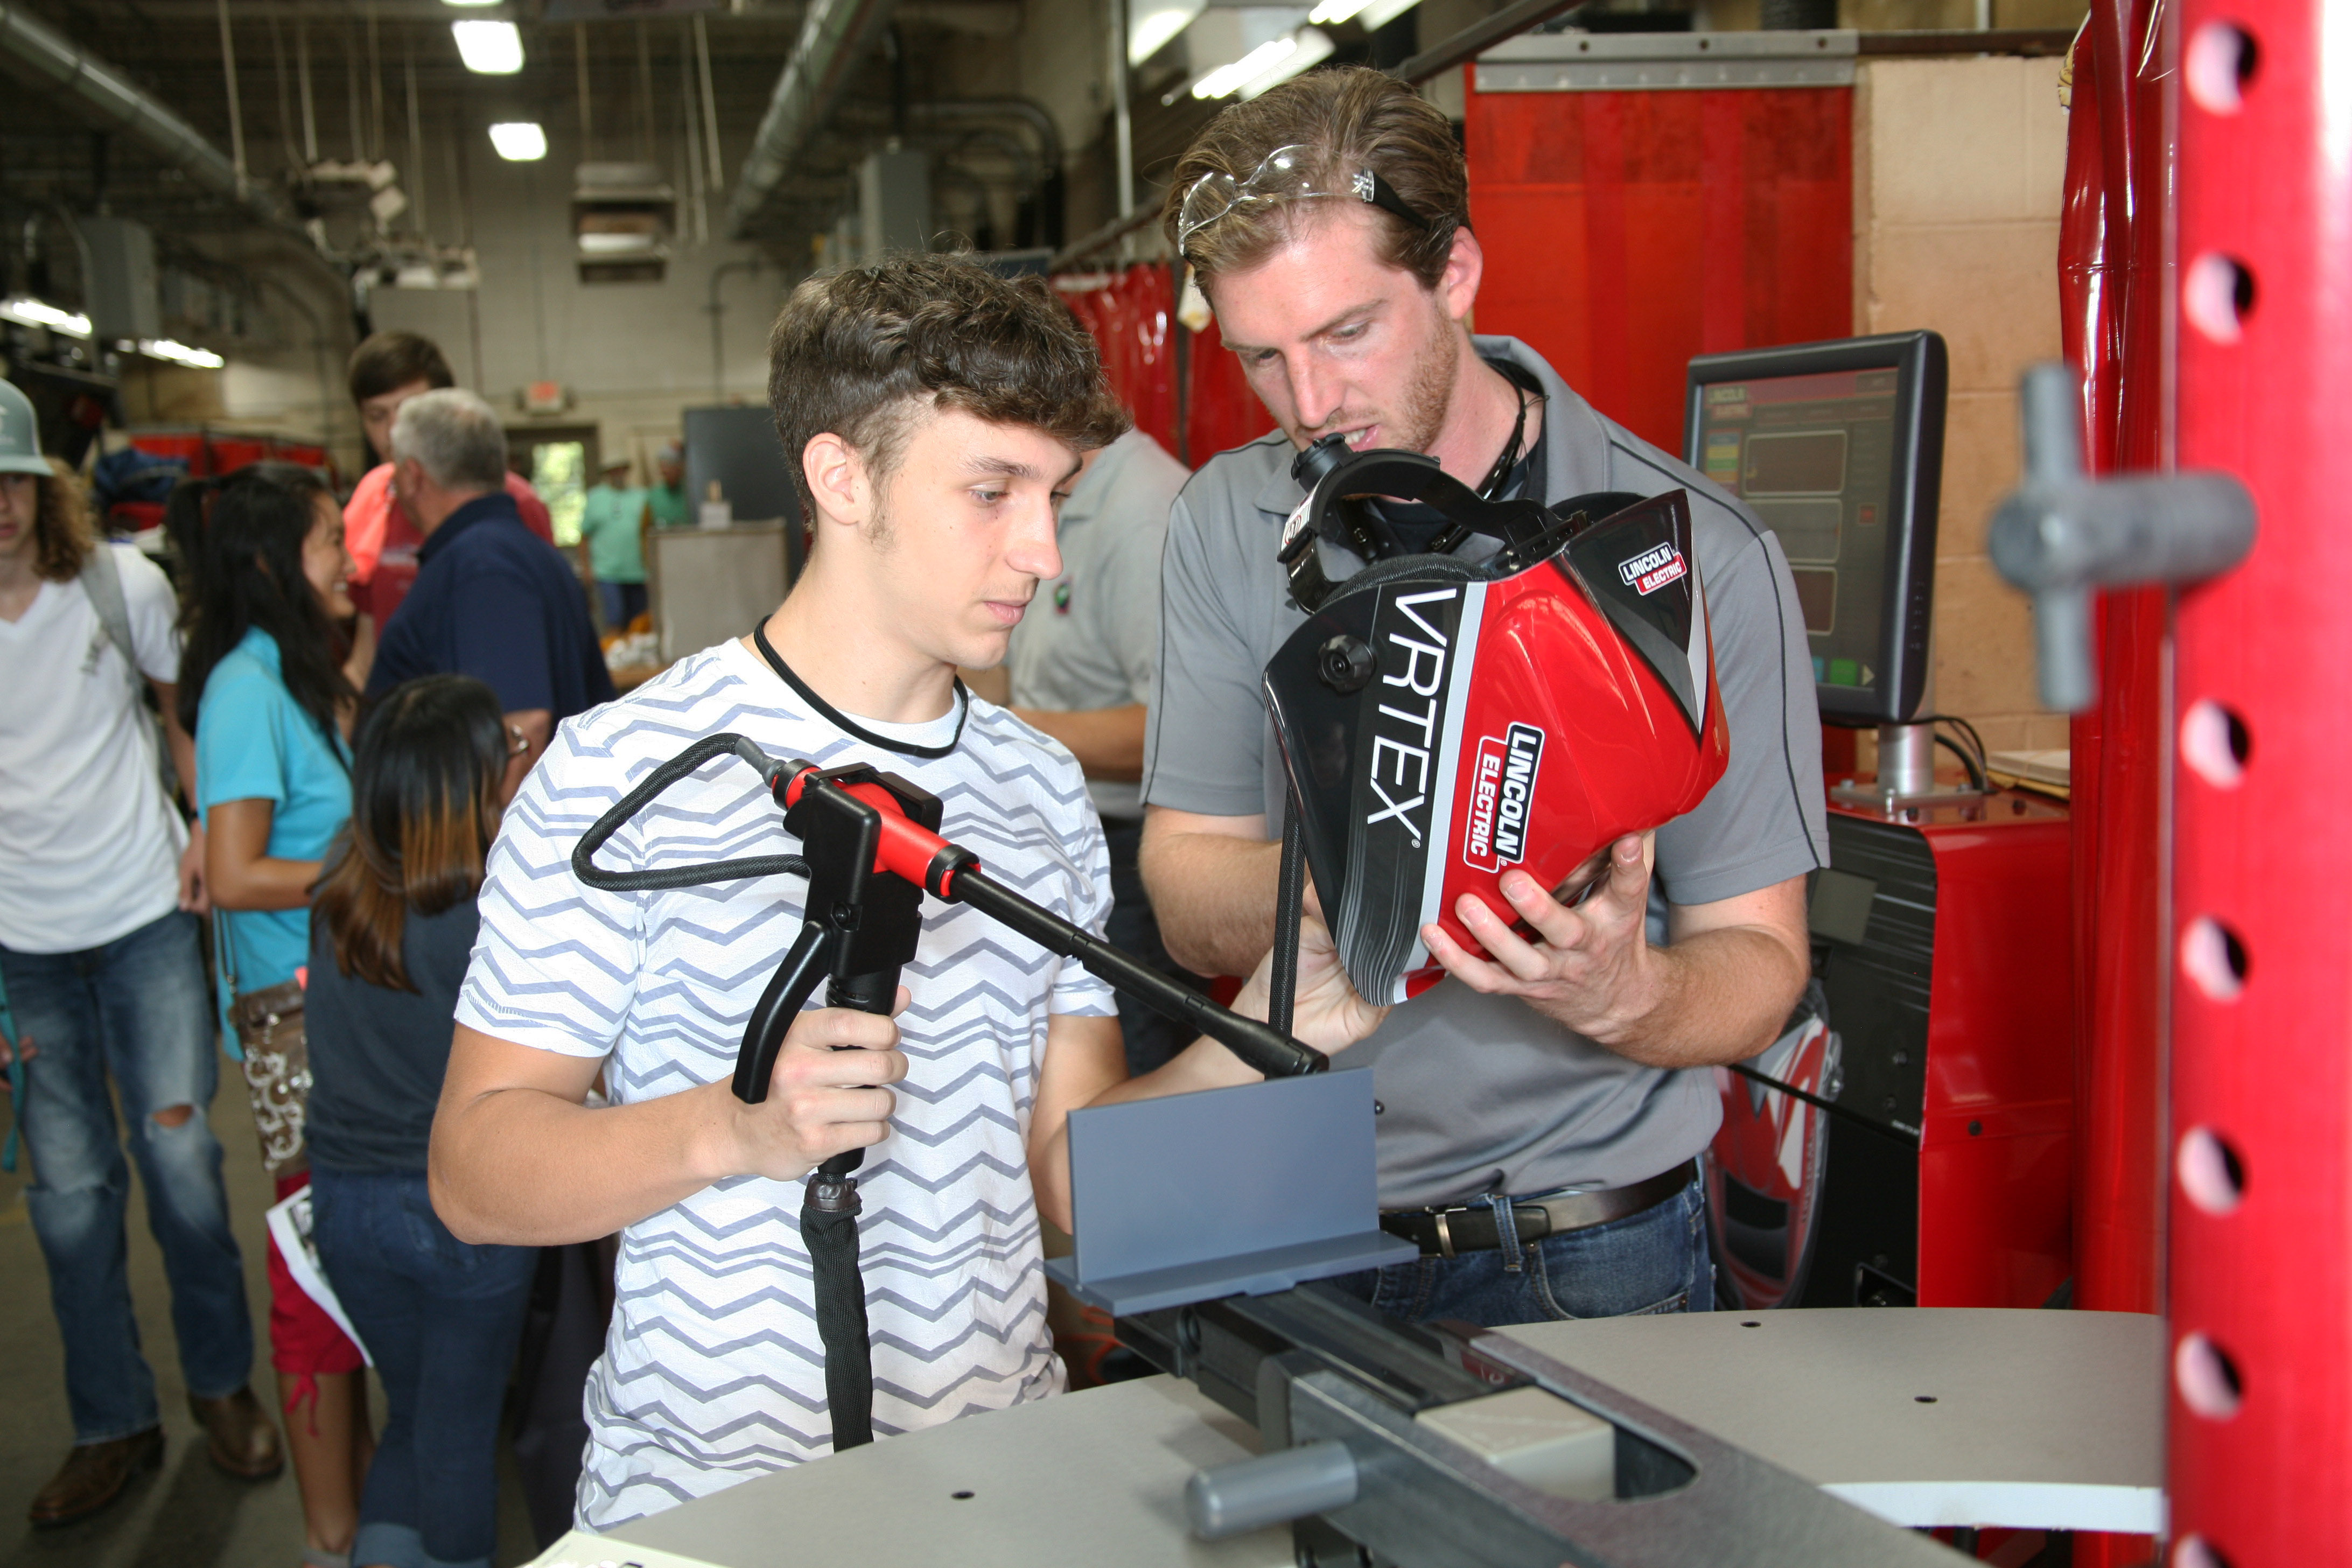 Curt Metz (right) of Lincoln Electric, goes over the welding simulator with Kaleb Brondaway (left) of Rome High School.